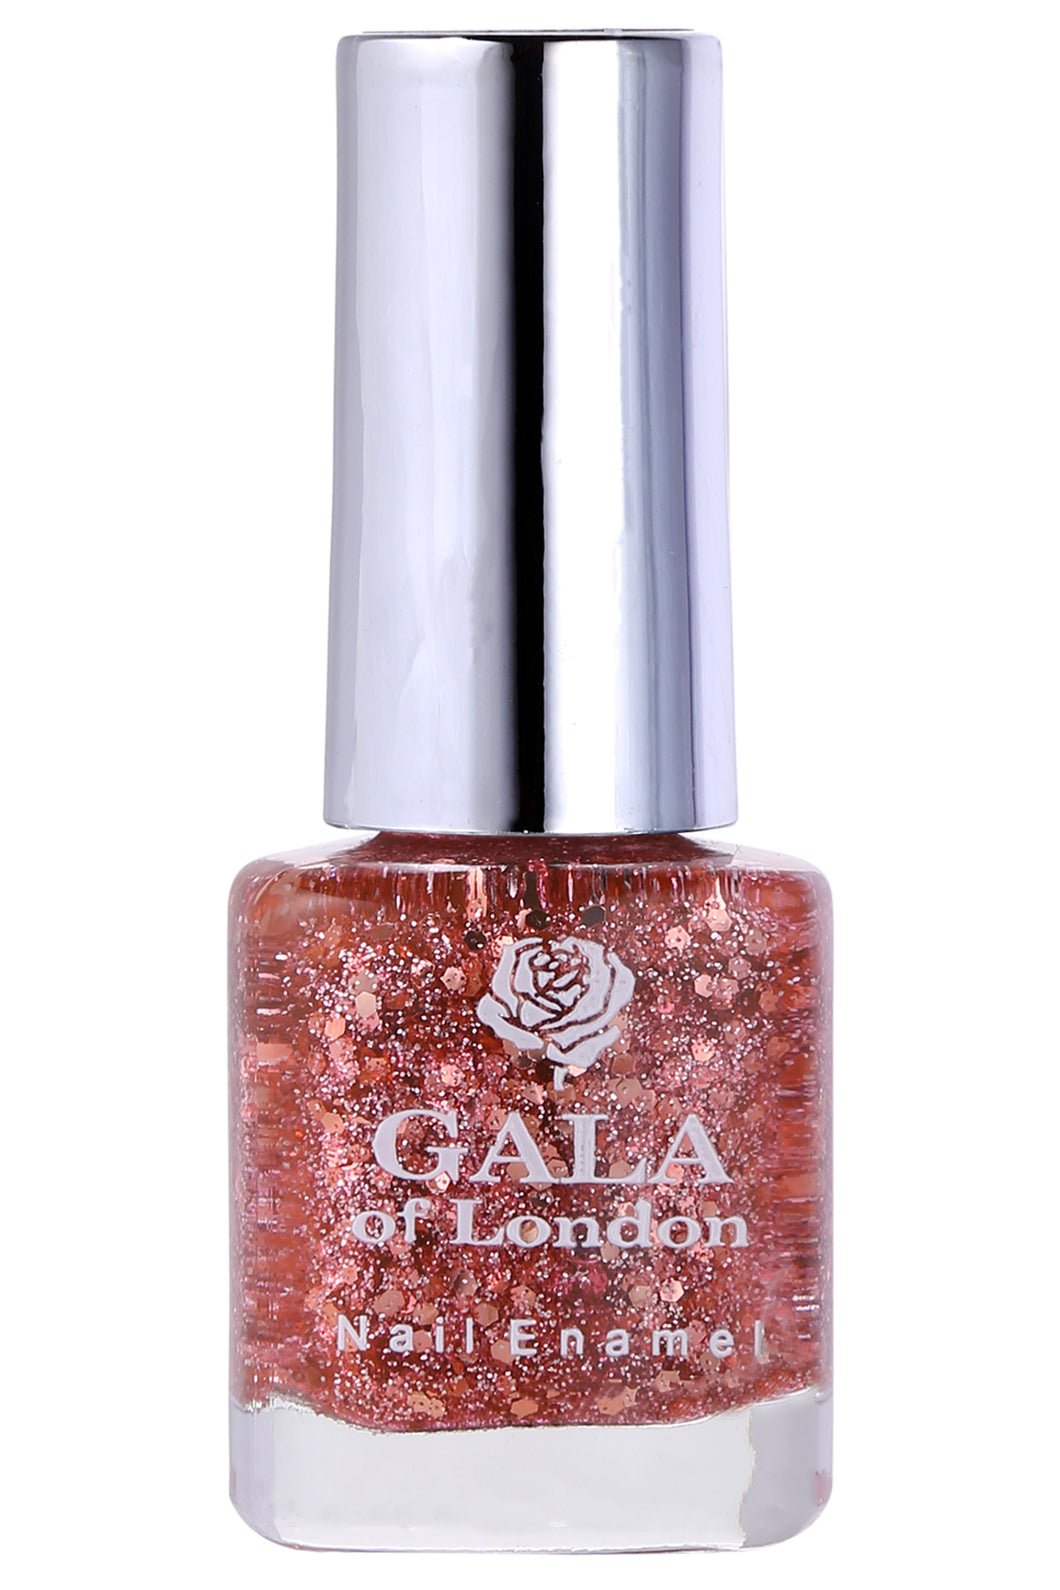 Gala of London Bridal Nail Polish Pink Glossy BR14